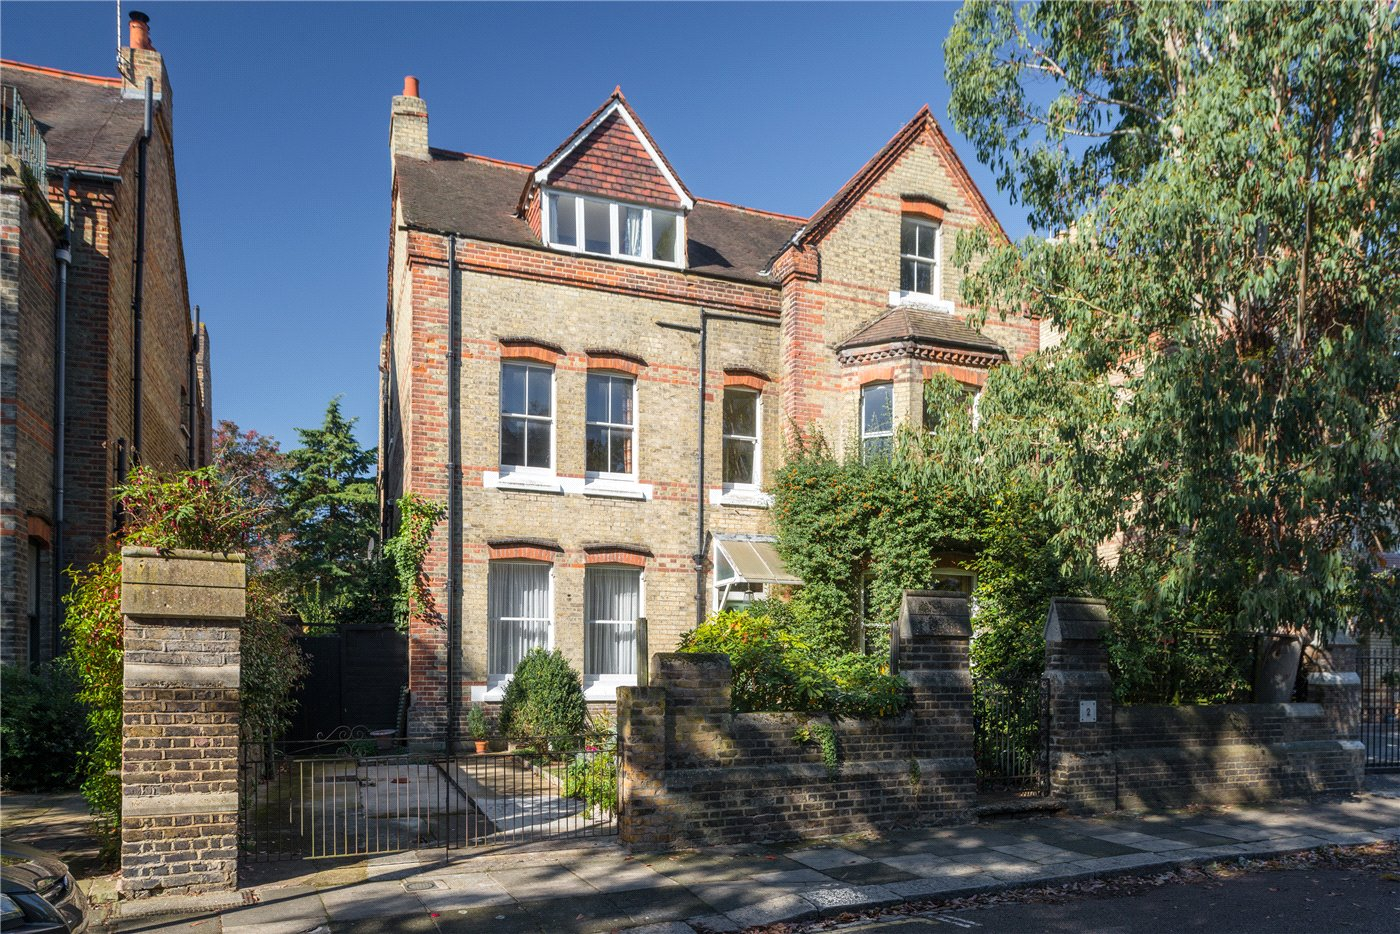 8 Bedrooms Detached House for sale in Grange Park, London, W5